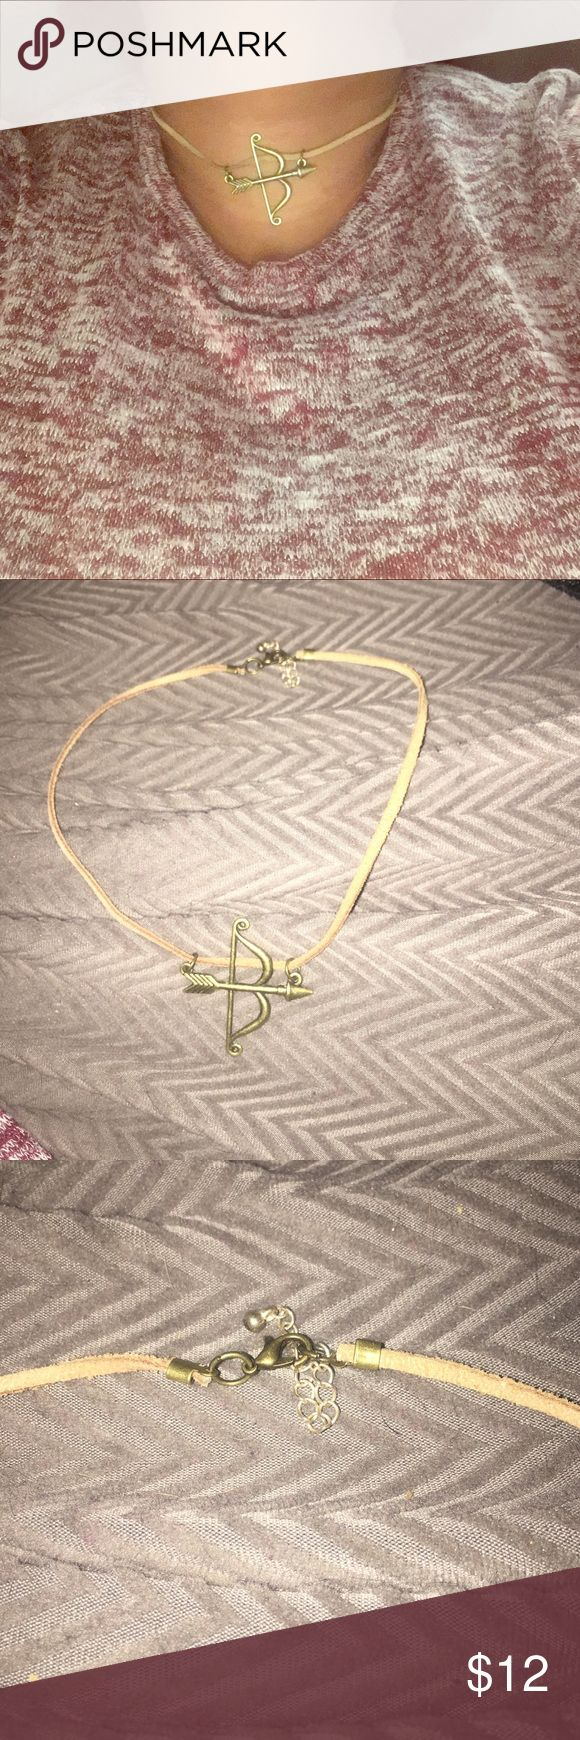 Cute bow & arrow necklace. Cute bow & arrow charm on a simple tan cord. Has lobster clasp closure. Jewelry Necklaces